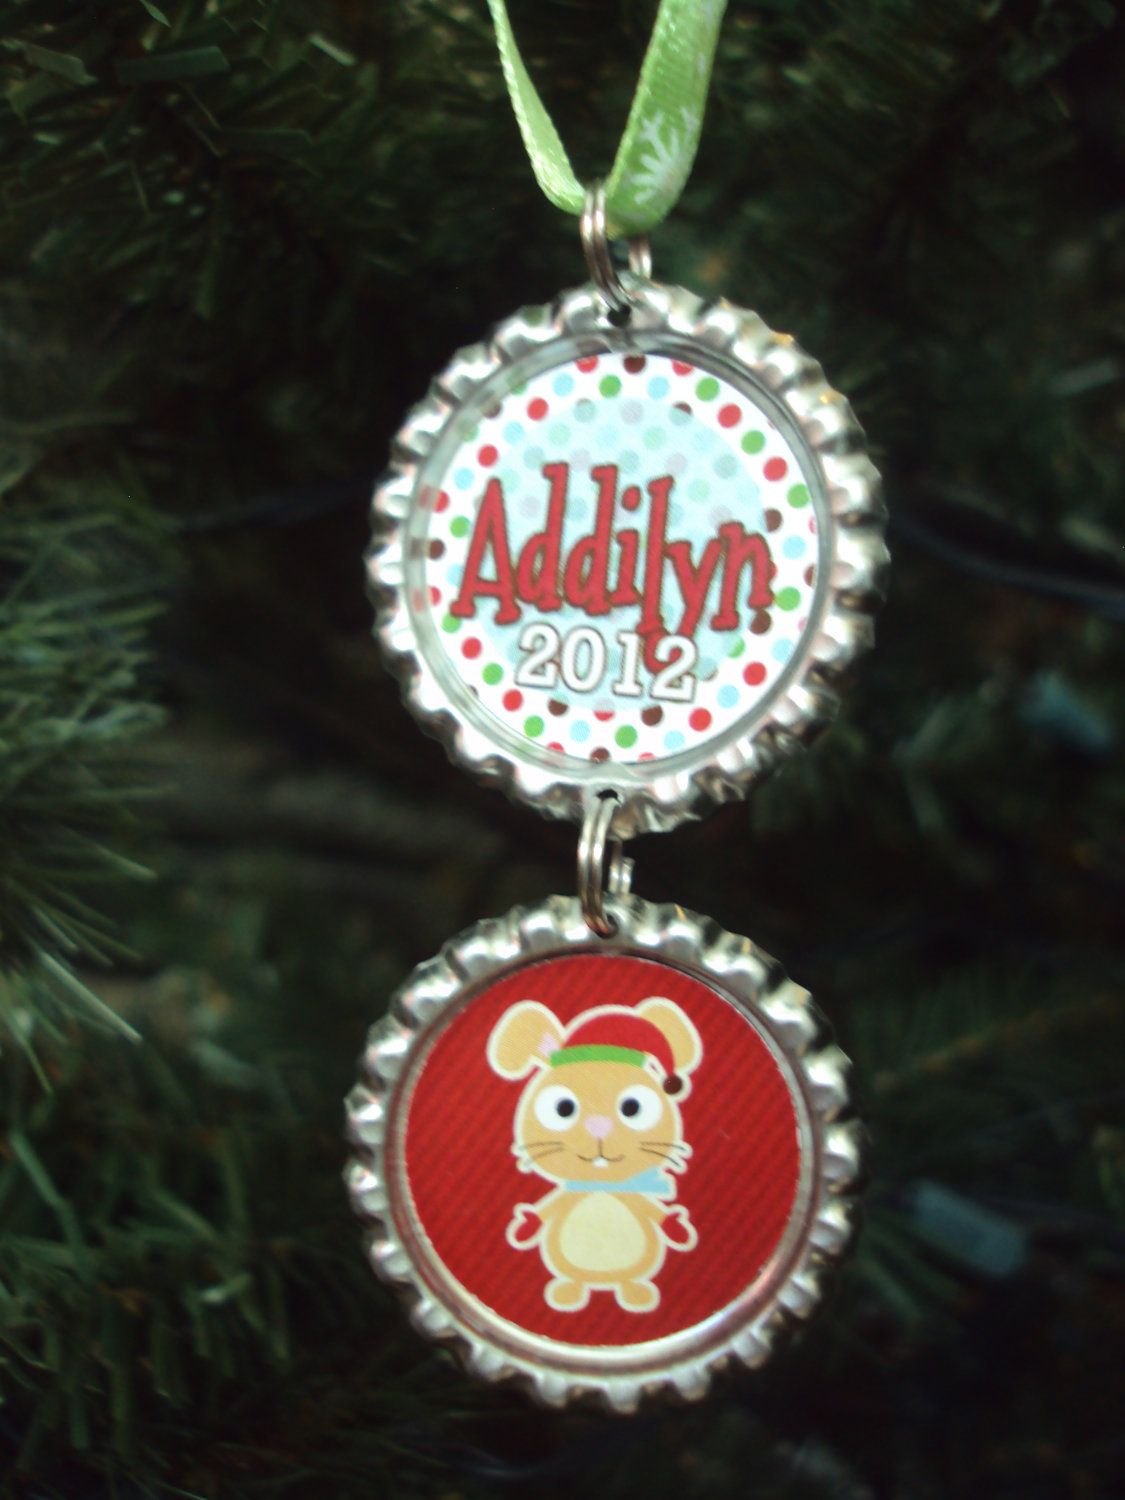 Kids Christmas Ornament 2012  Bottlecap Ornament  Personalized Christmas  Ornaments  Gift For Grandparents,